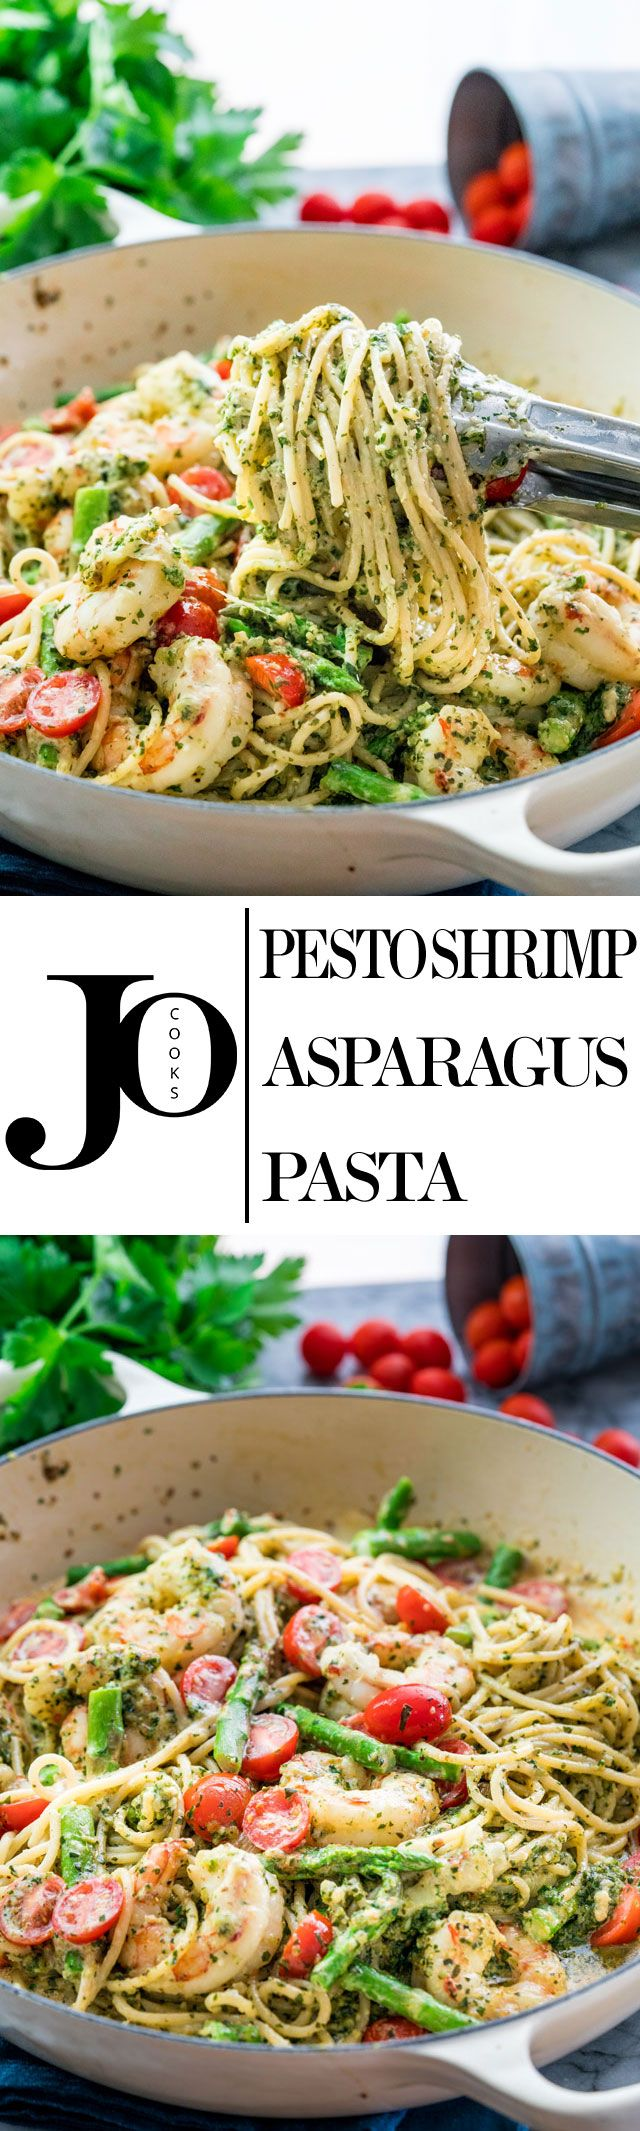 This Pesto Shrimp Asparagus Pasta can be on your dinner table in 30 minutes tops with your own fresh pesto made from scratch. Easy to make, delicious and packed with lots of flavor!